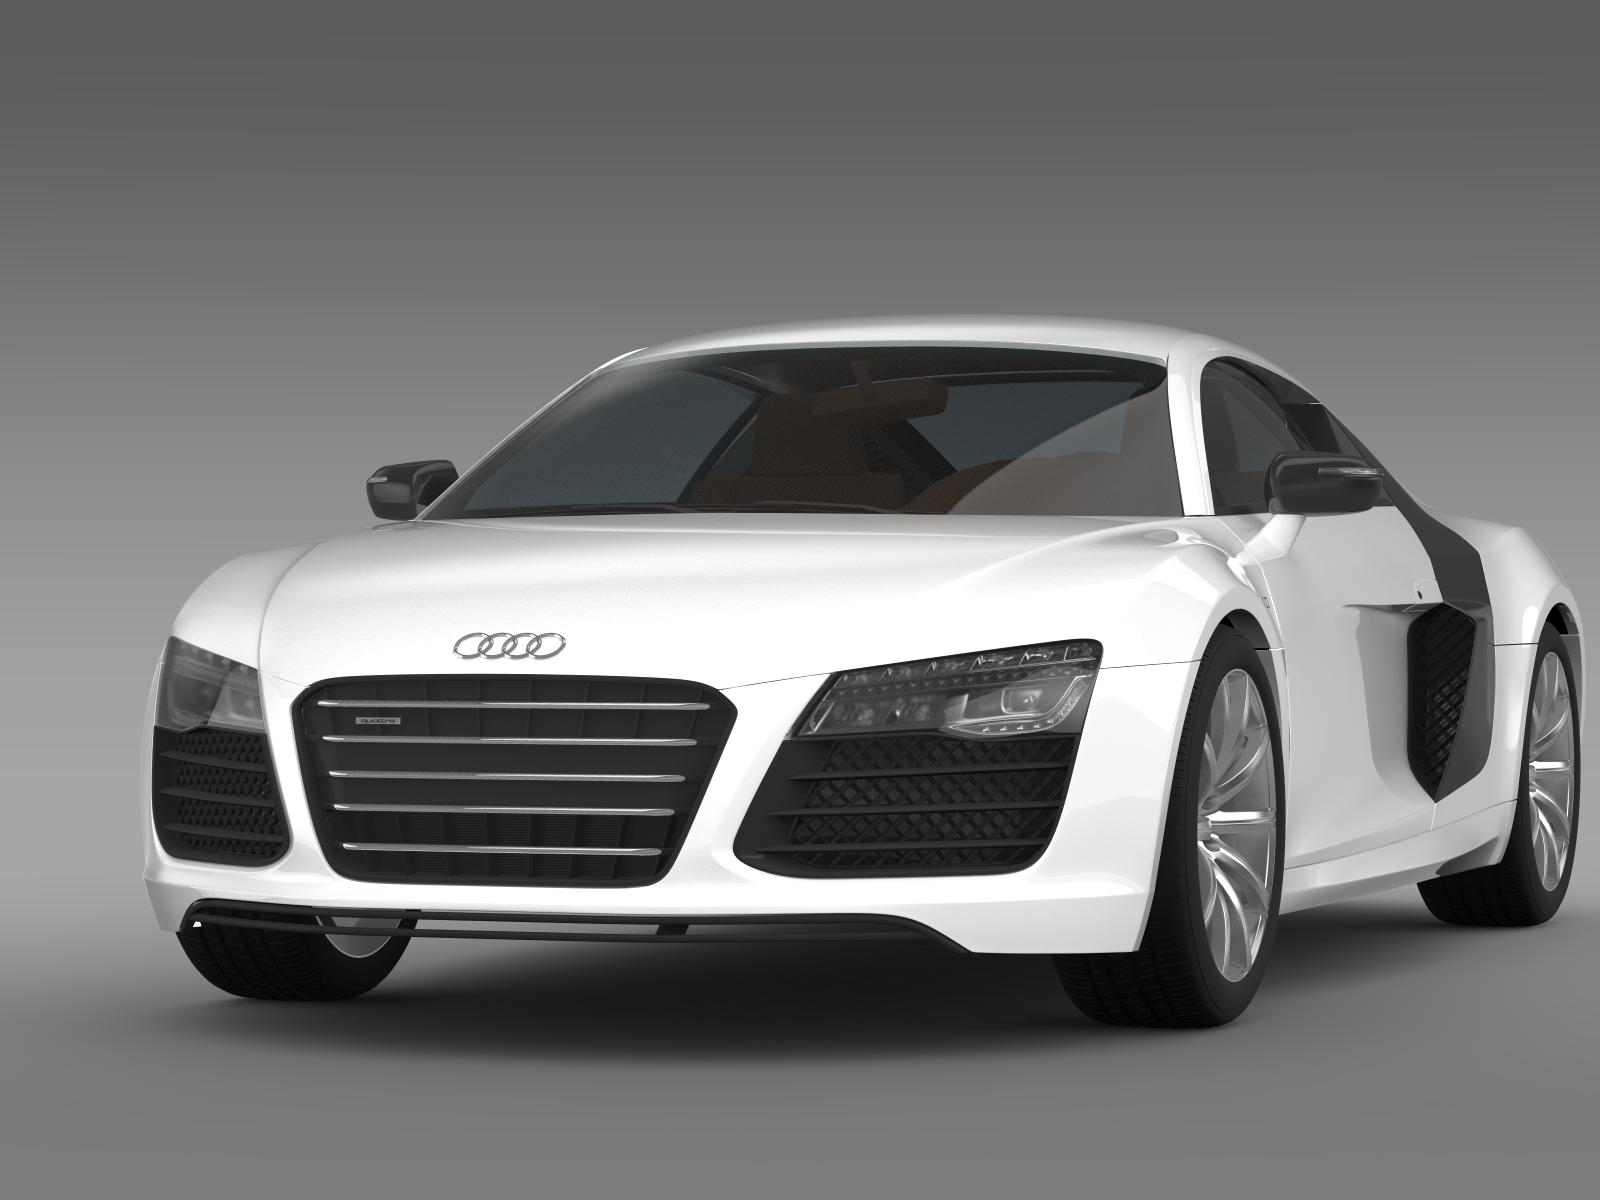 b b audi r8 v10 plus 2013 3d model buy b b audi r8 v10. Black Bedroom Furniture Sets. Home Design Ideas